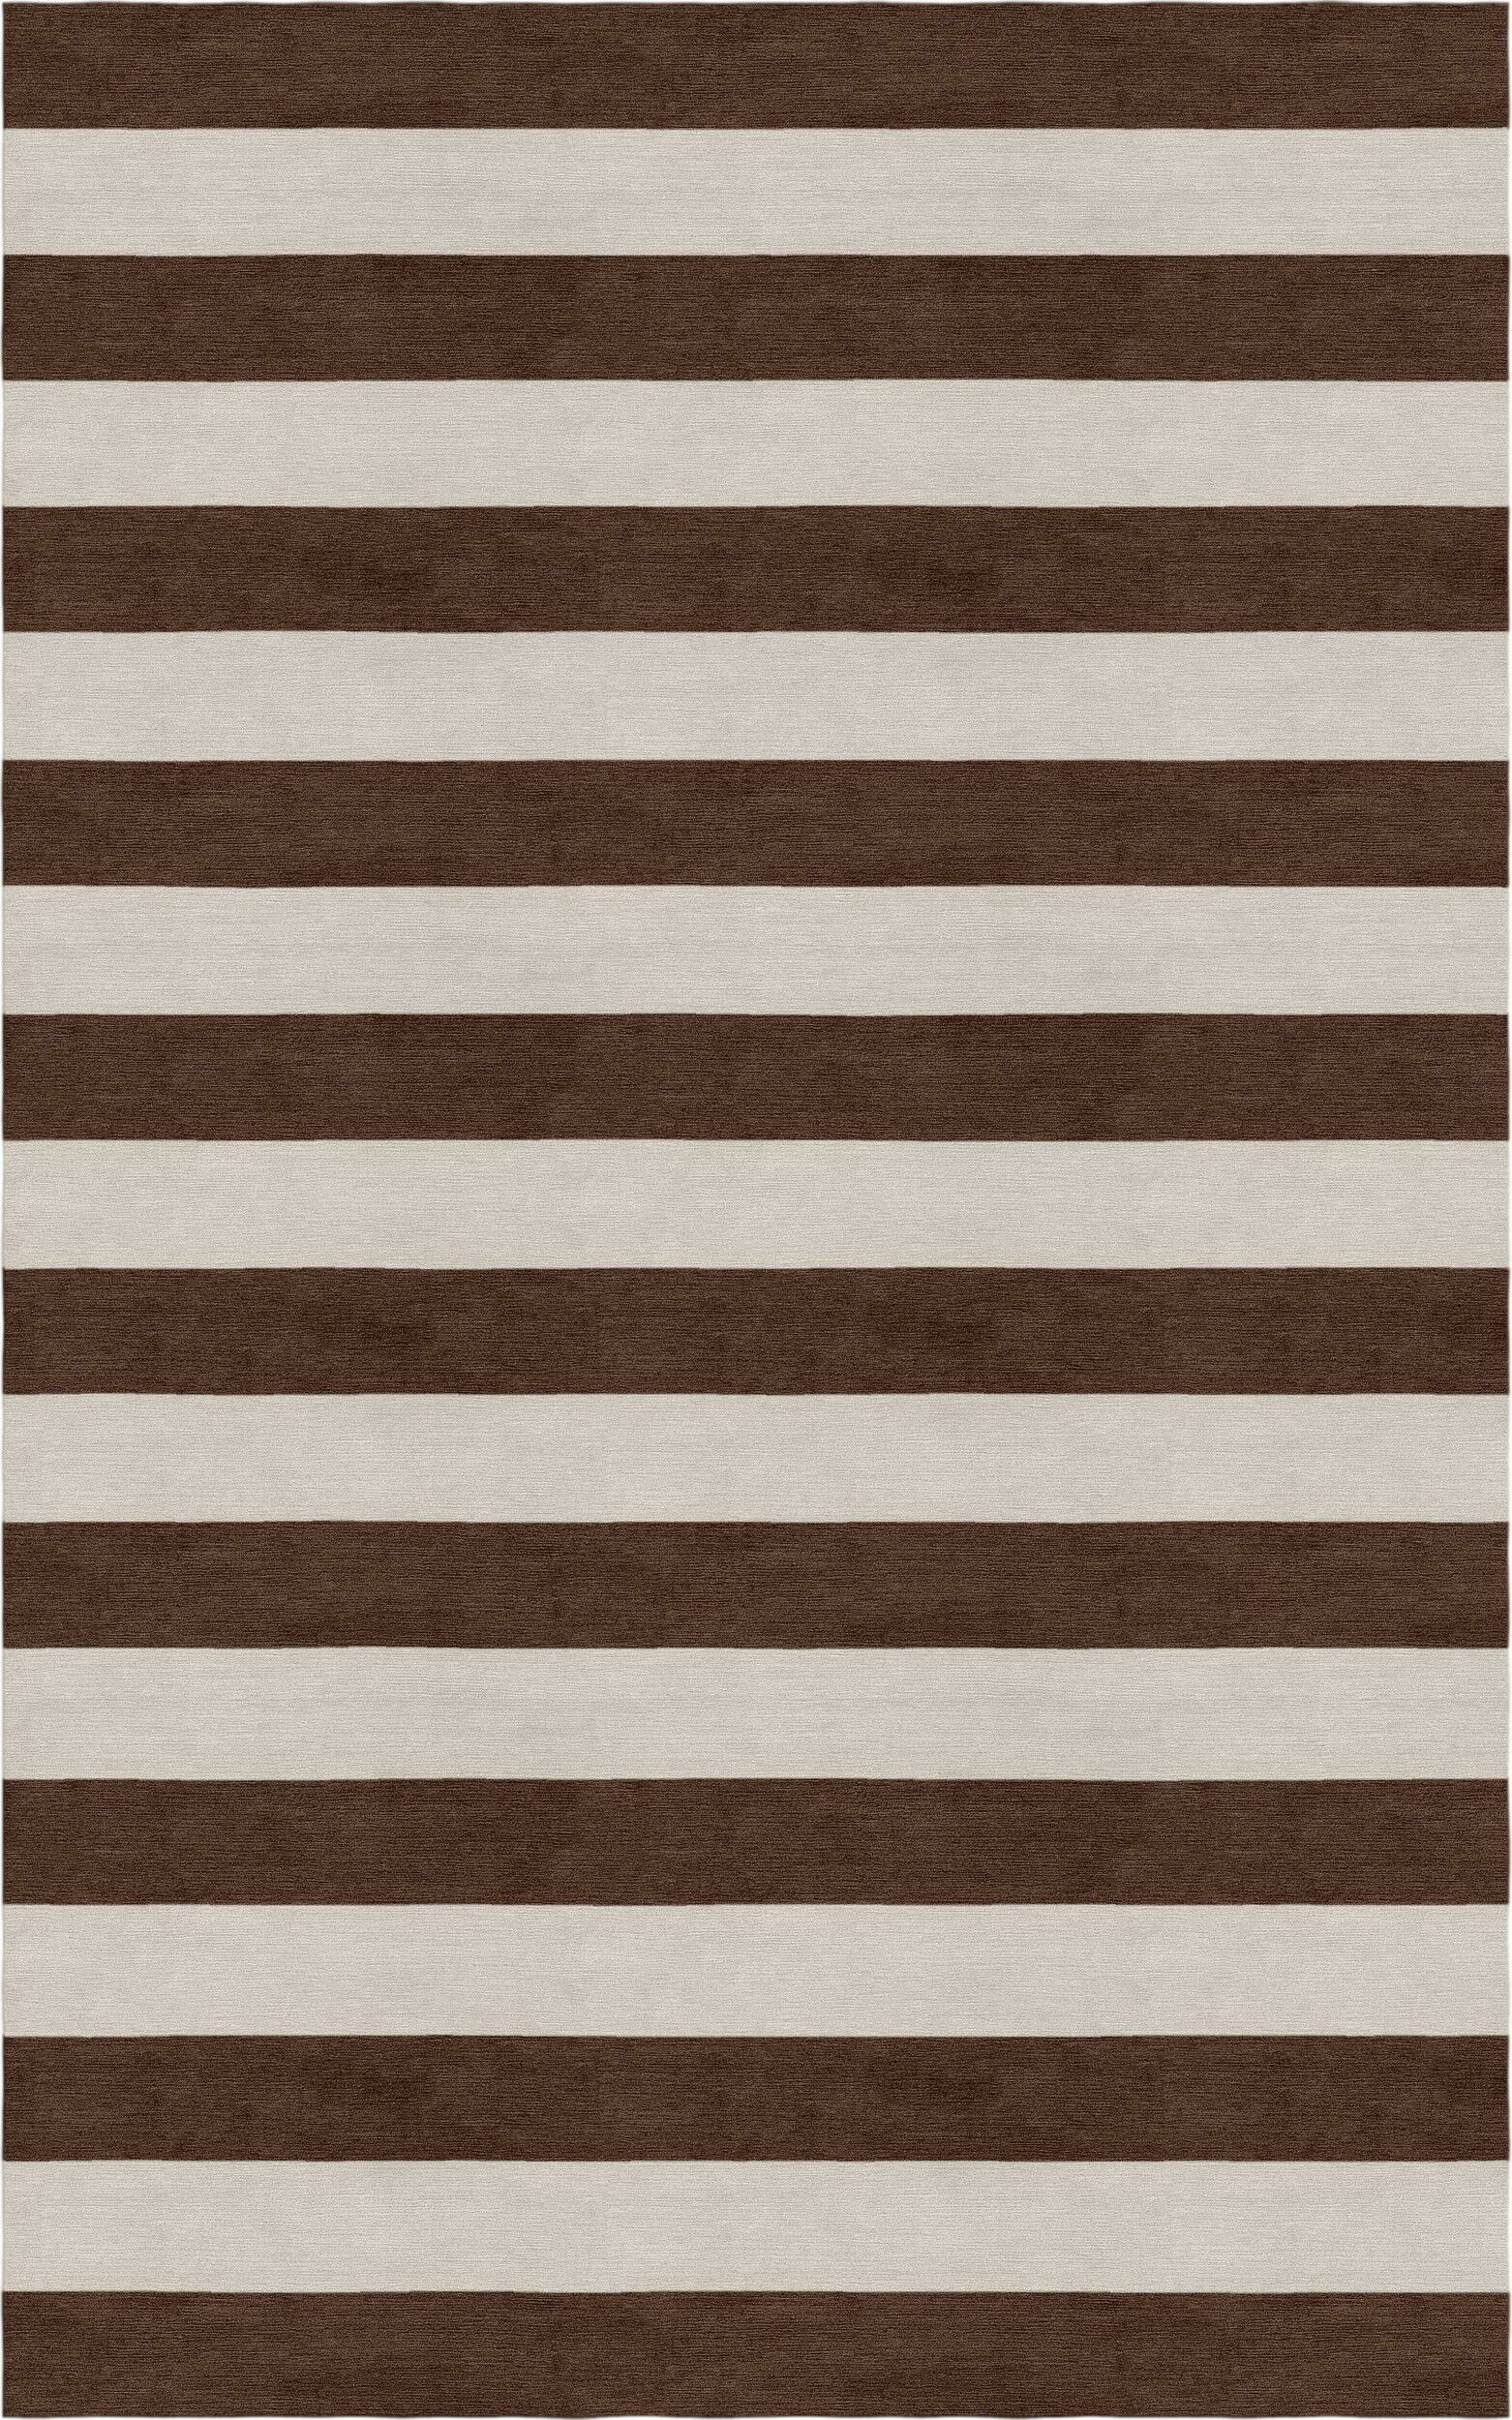 Critchlow Stripe Hand Tufted-Wool Silver/Brown Area Rug Rug Size: Rectangle 6' x 9'